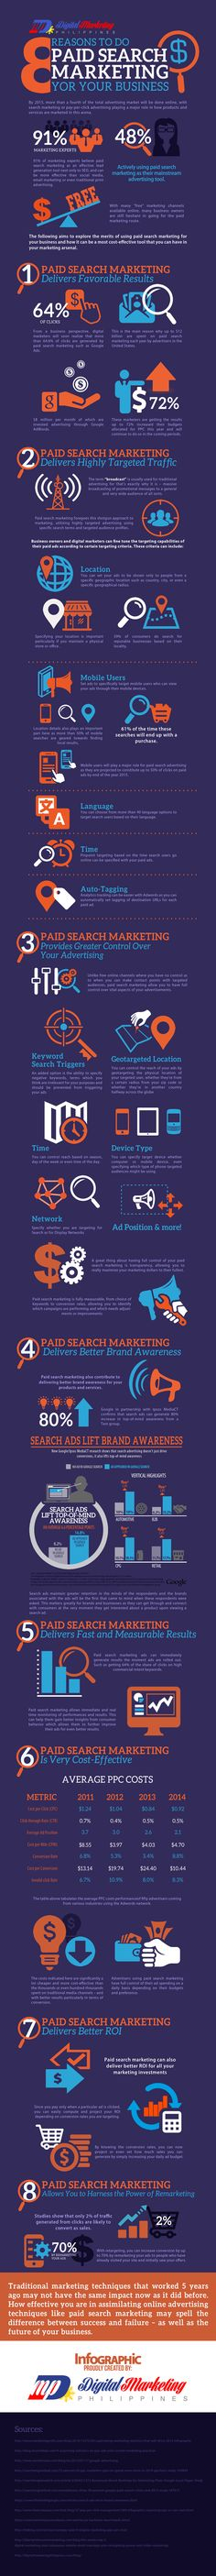 8 Reasons To Do Paid Search Marketing For Your Business #infographic